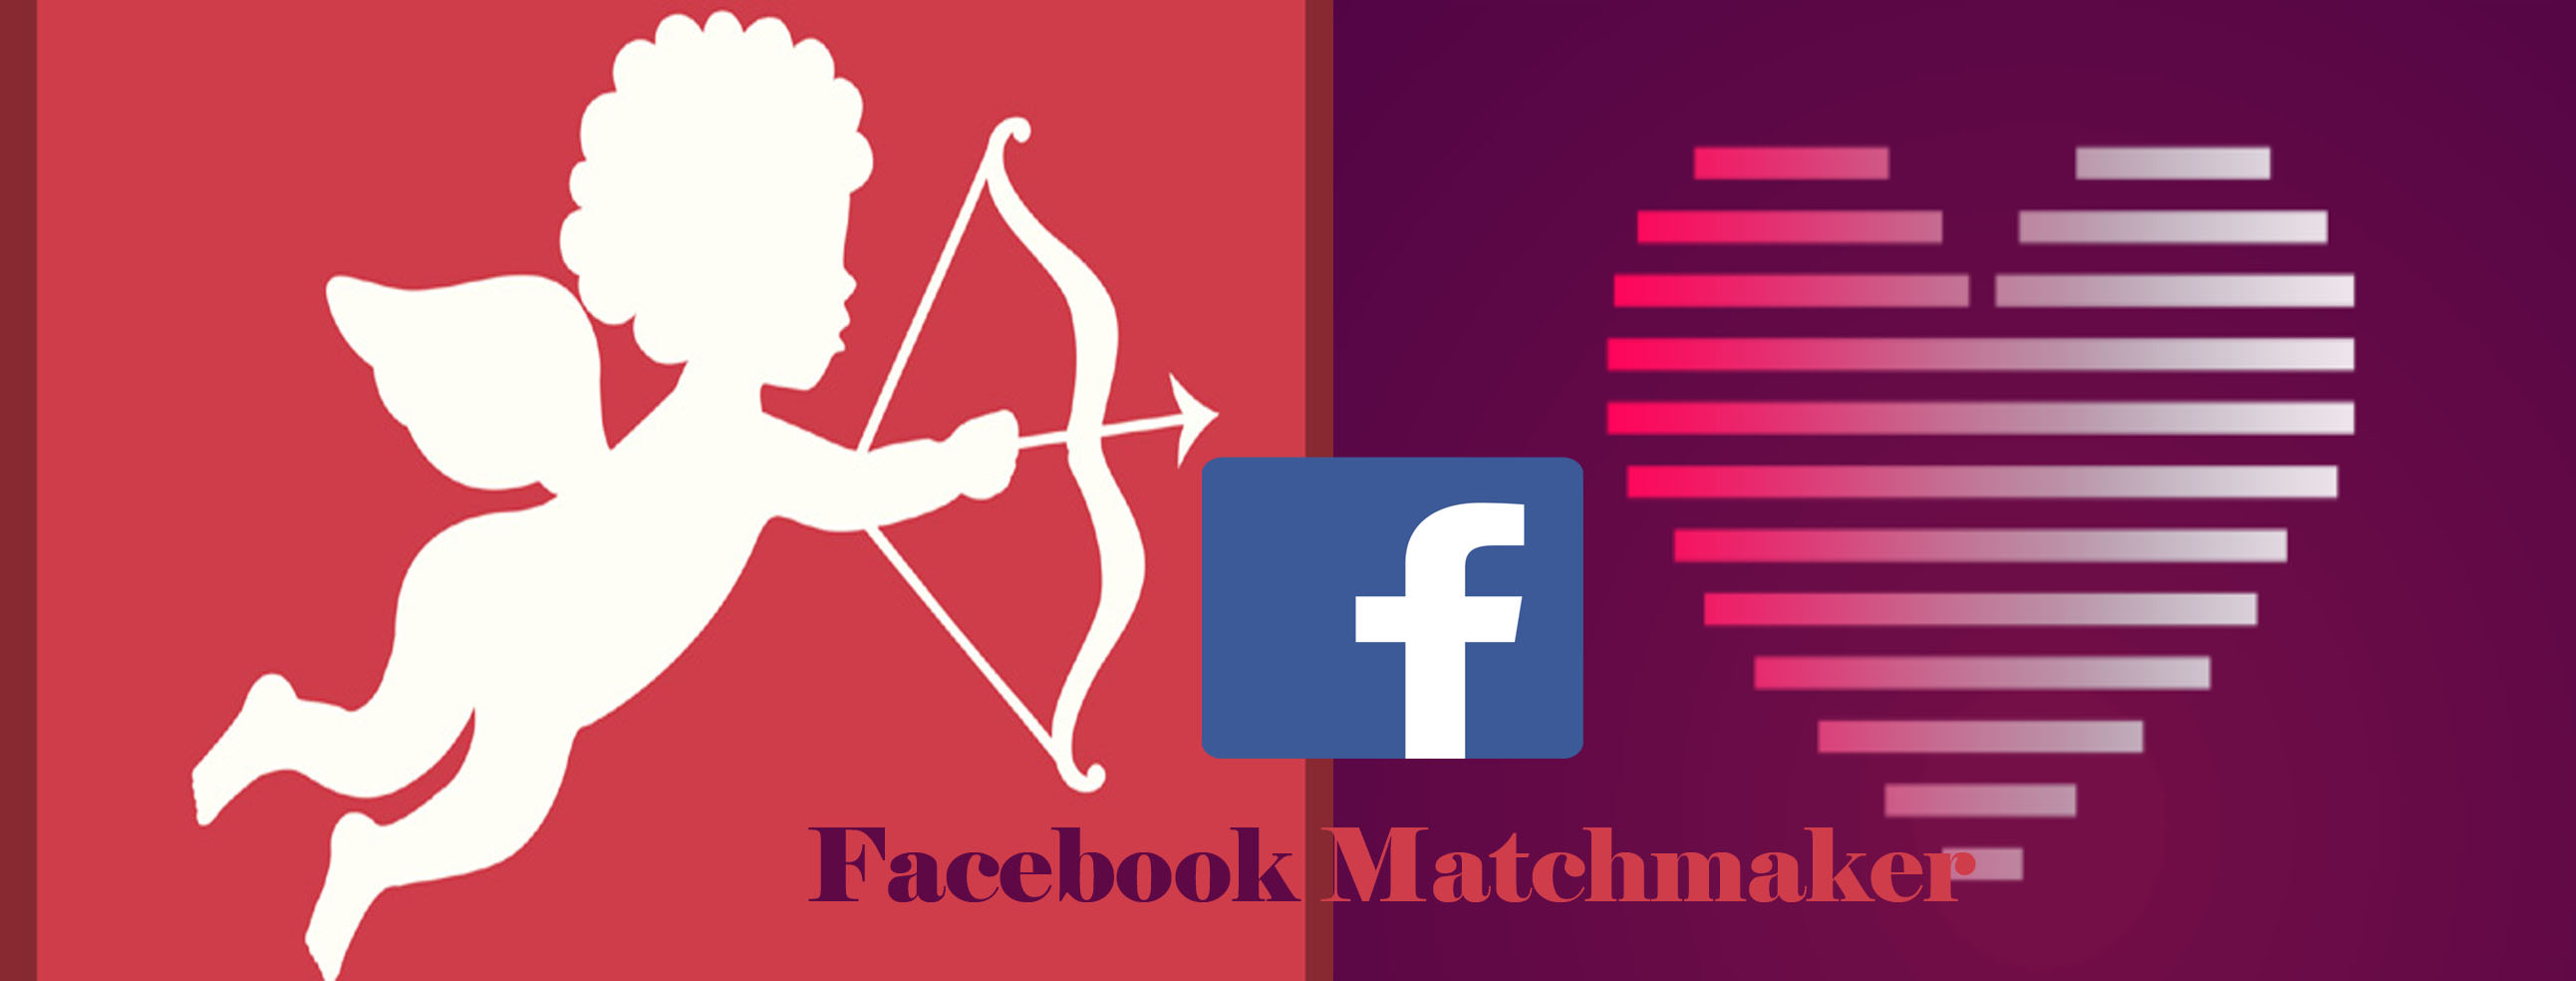 Facebook Matchmaker - What is The Facebook Matchmaker